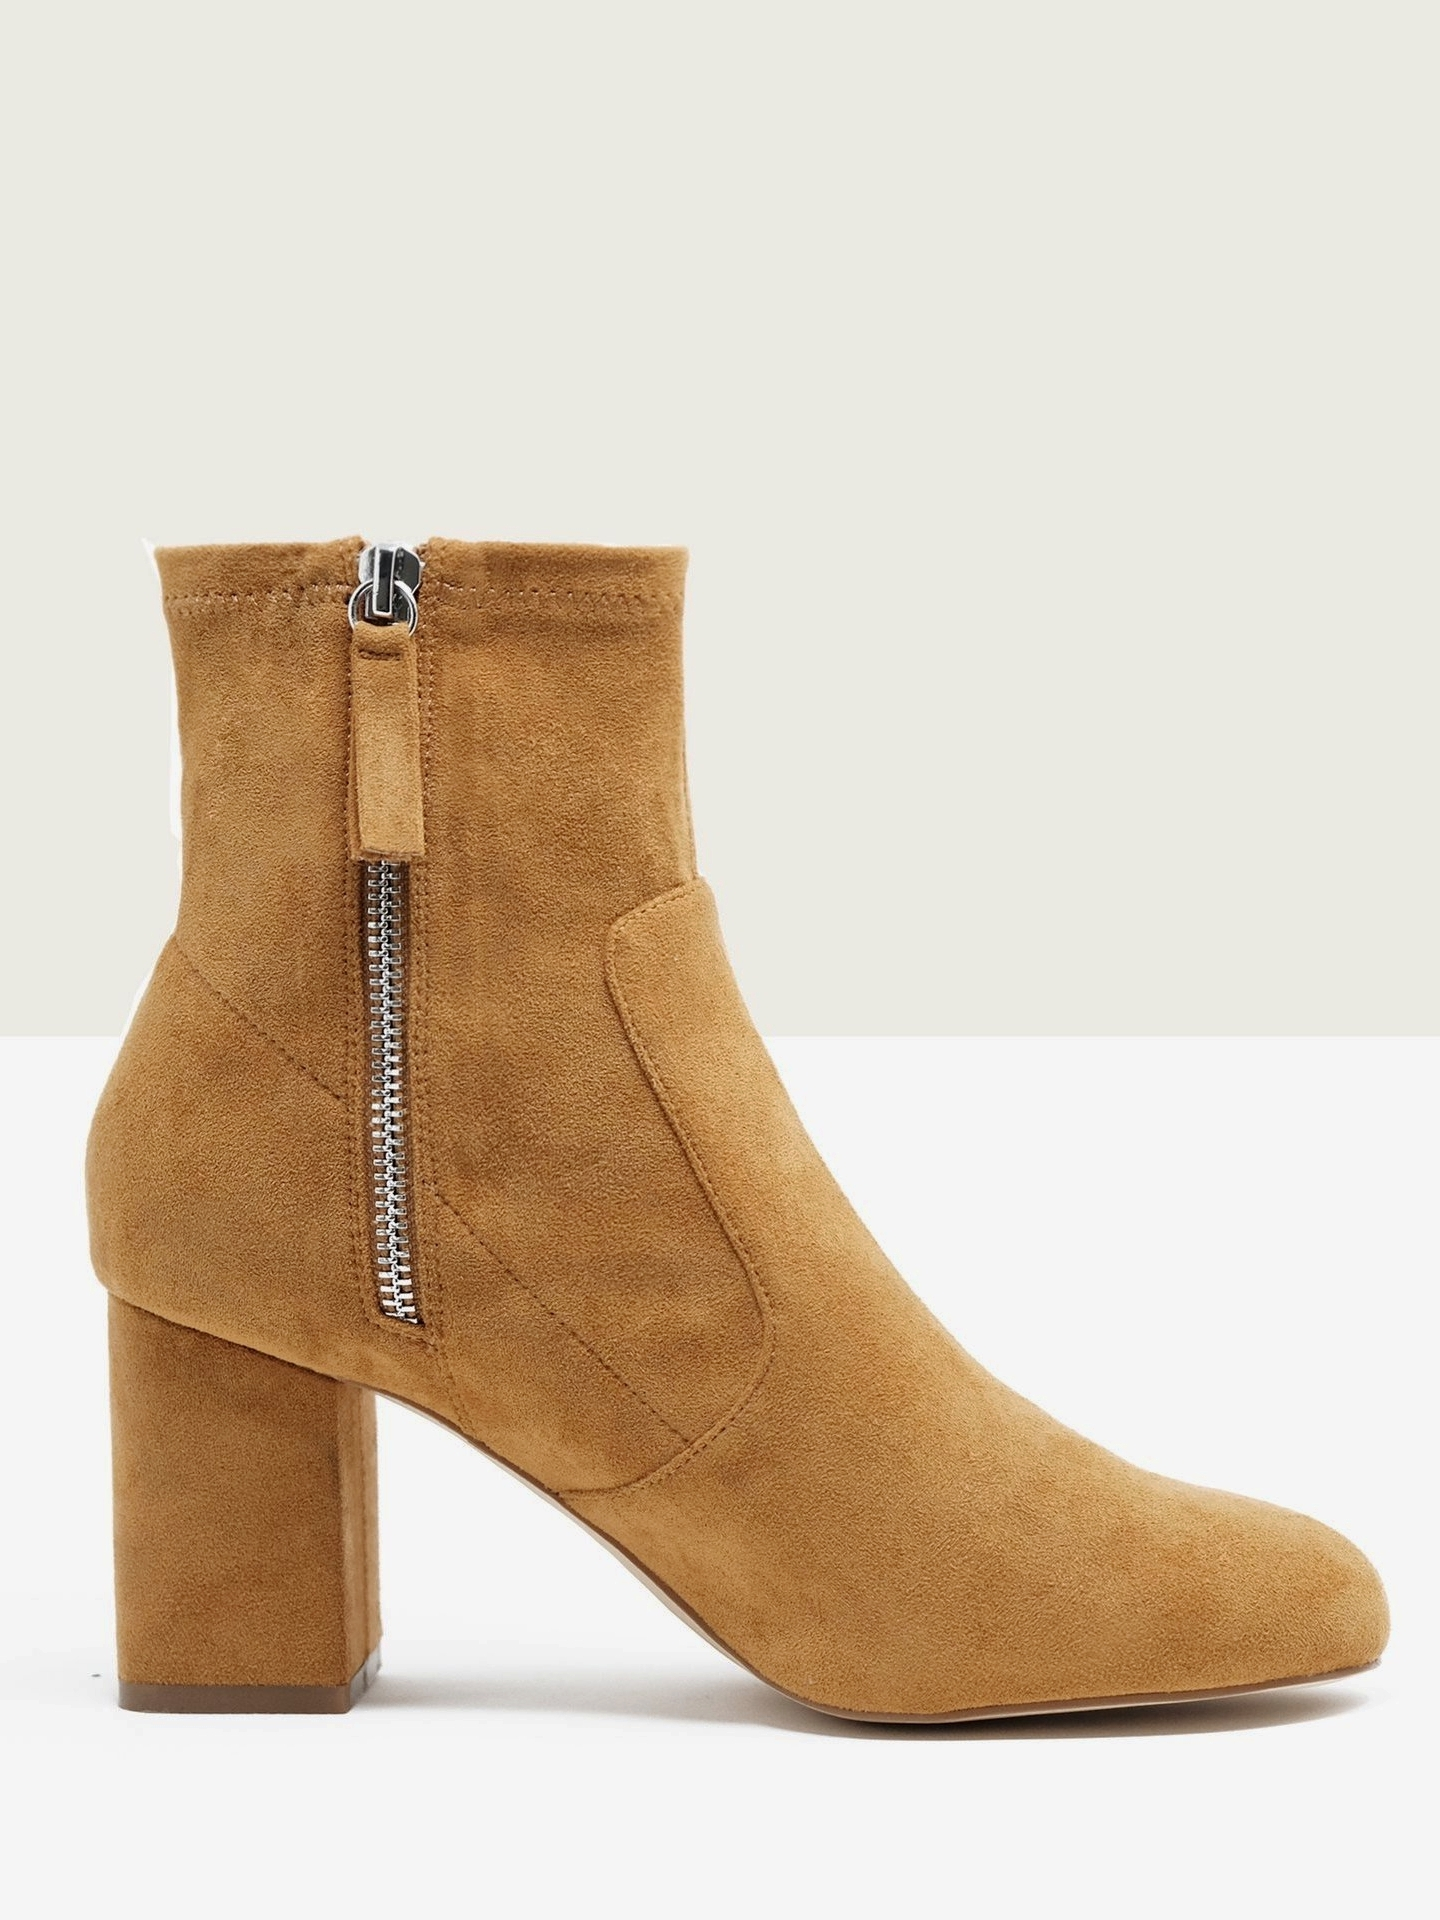 Stylish Vegan Boots - SUSI Studio